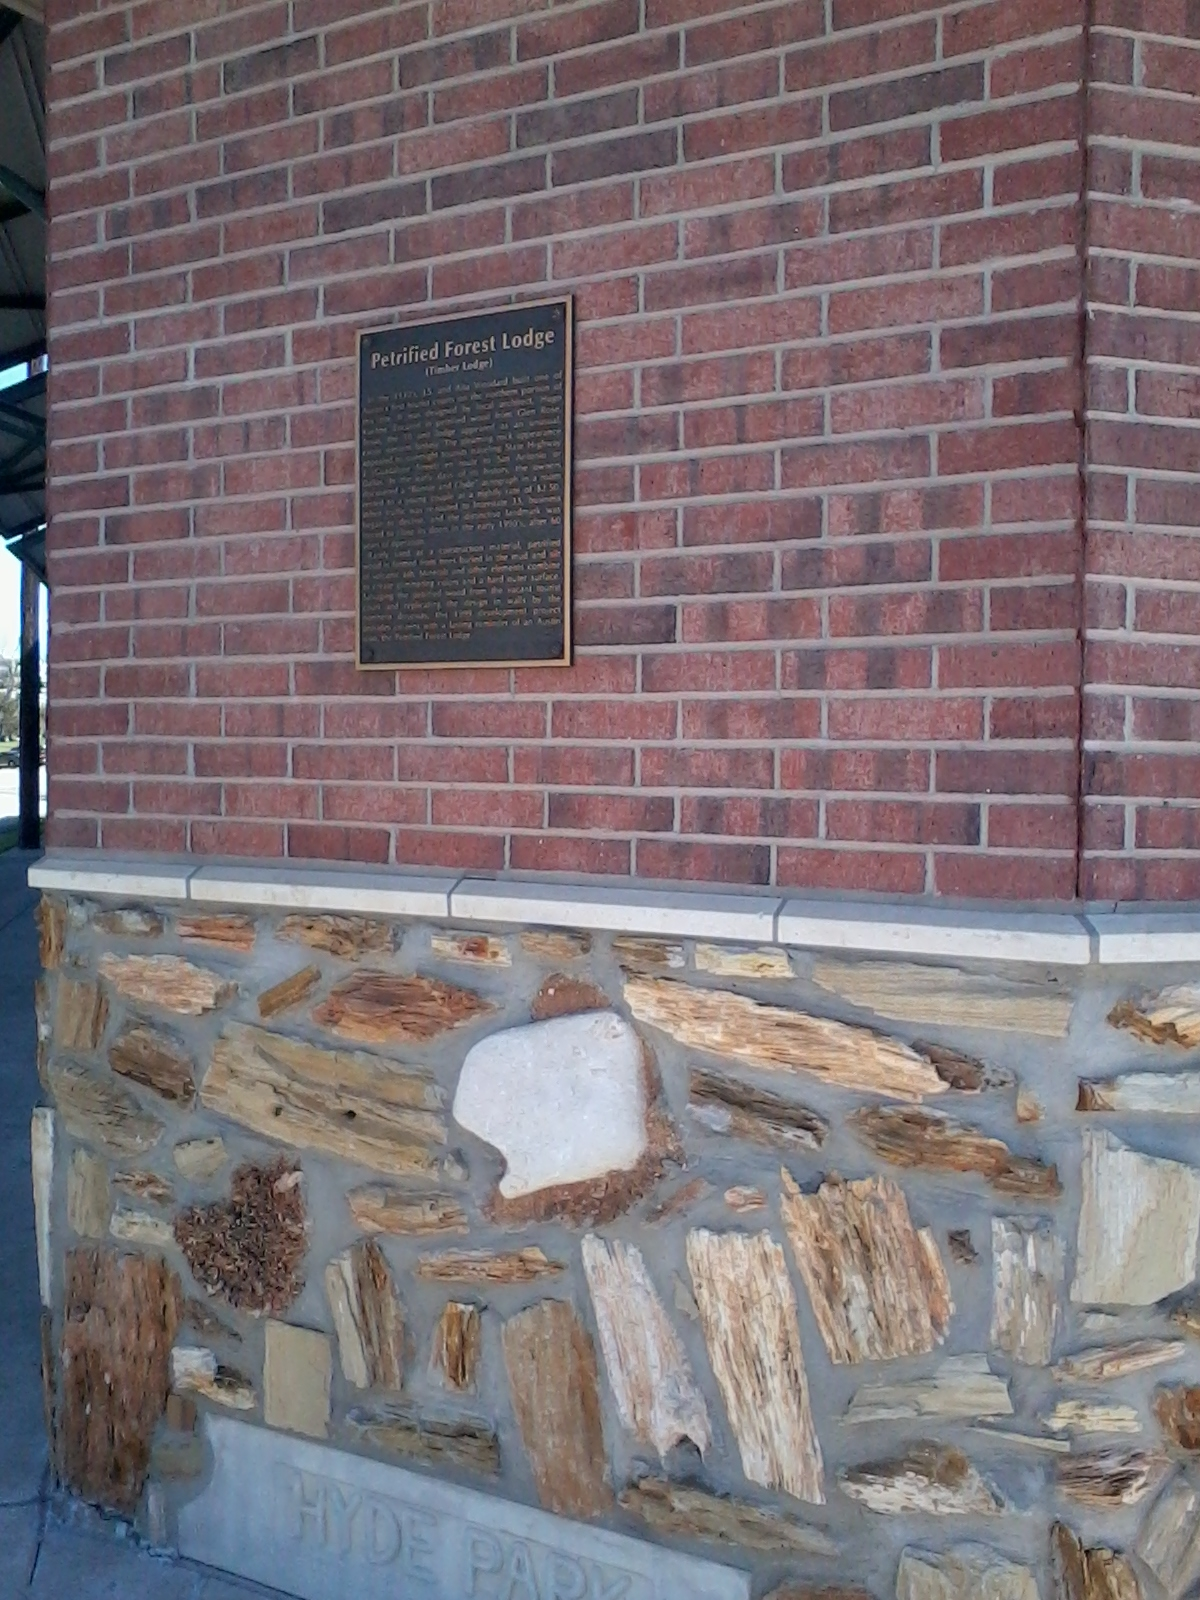 Petrified Forest Lodge Marker